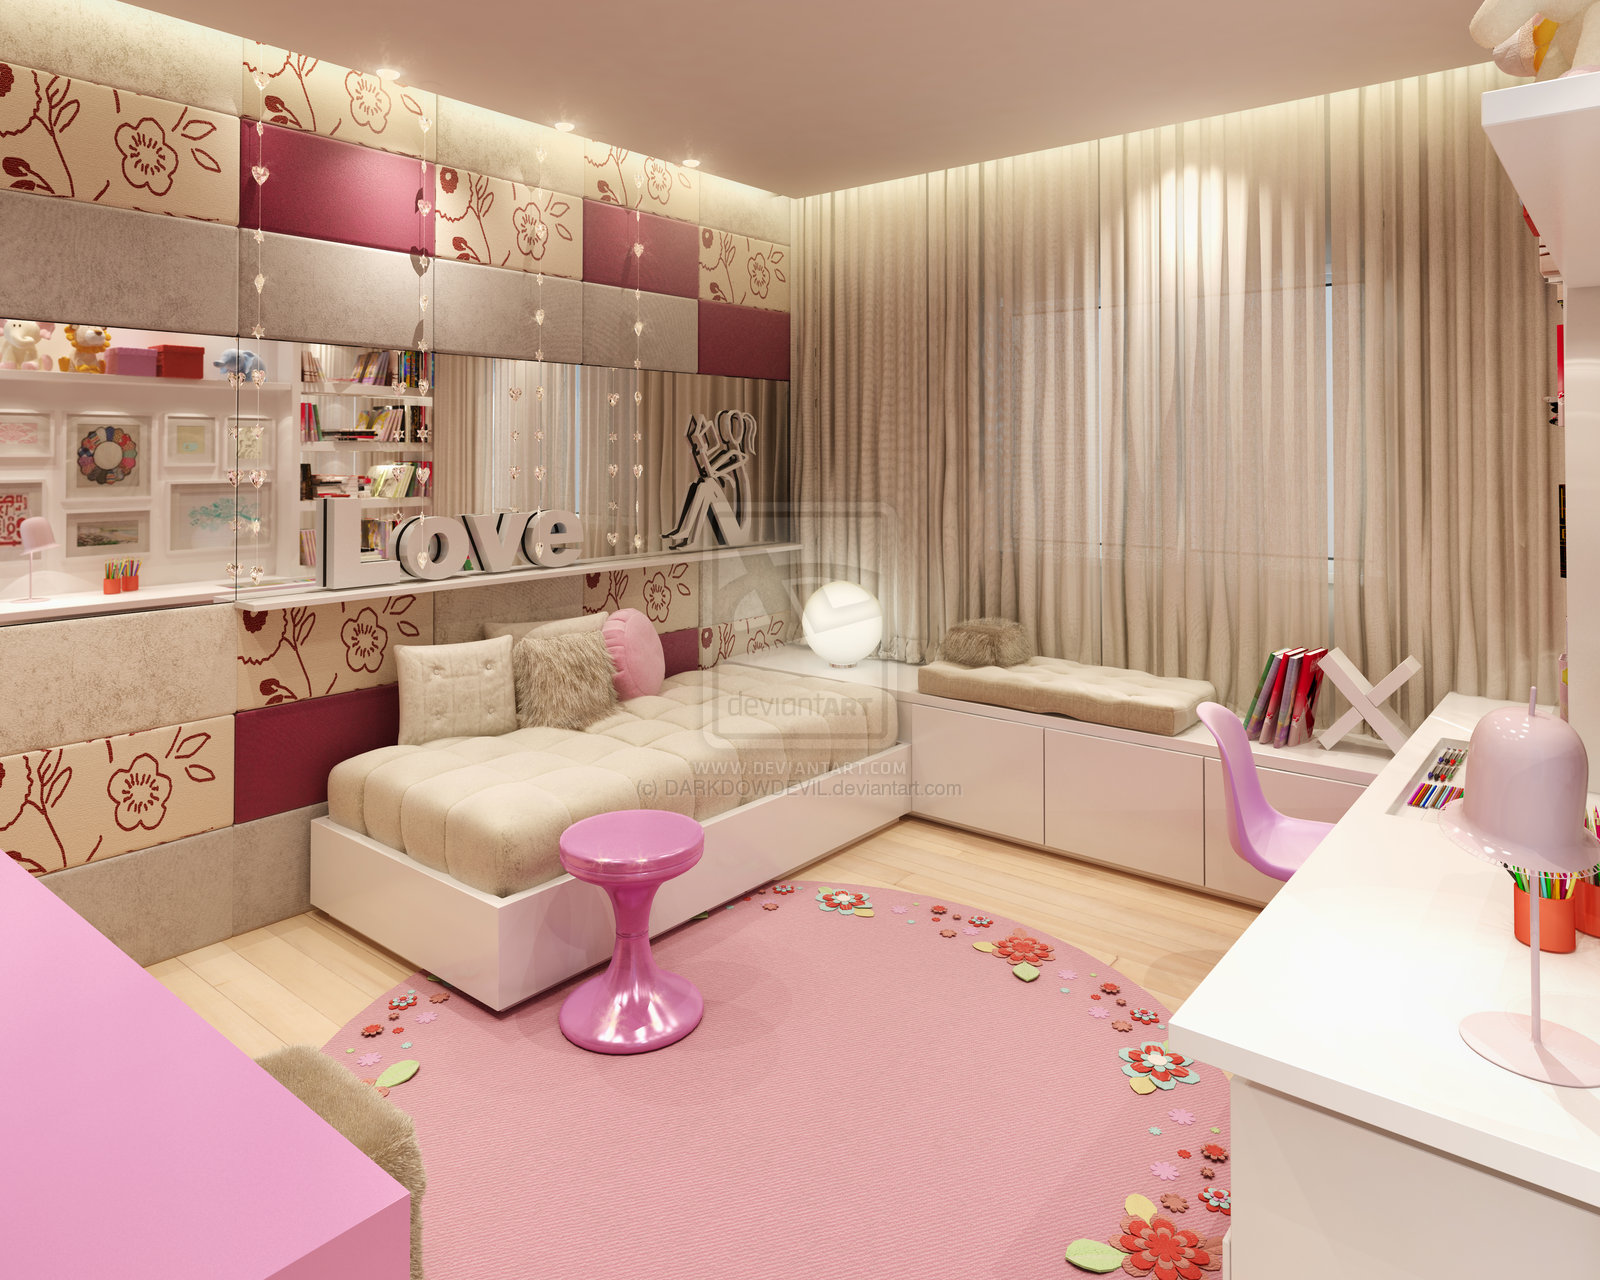 Girly bedroom design ideas wonderful for Bedroom ideas for women